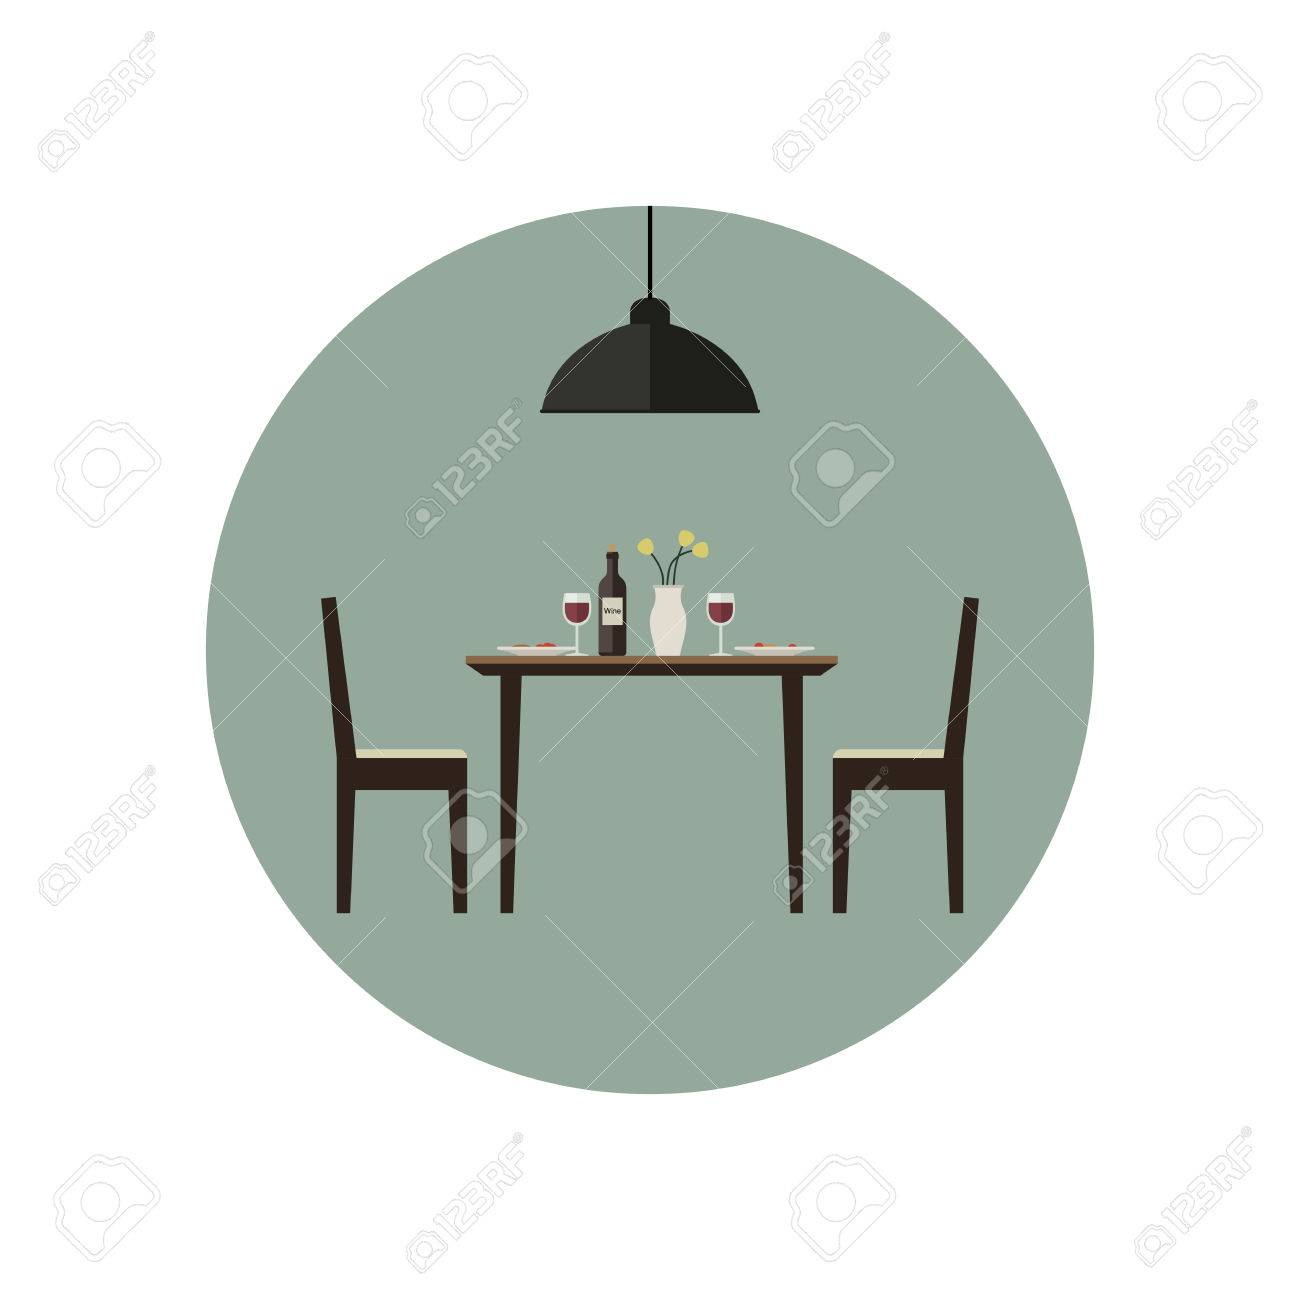 Dining Room Icon With Table And Two Chairs In Flat Style Vector Illustration Stock